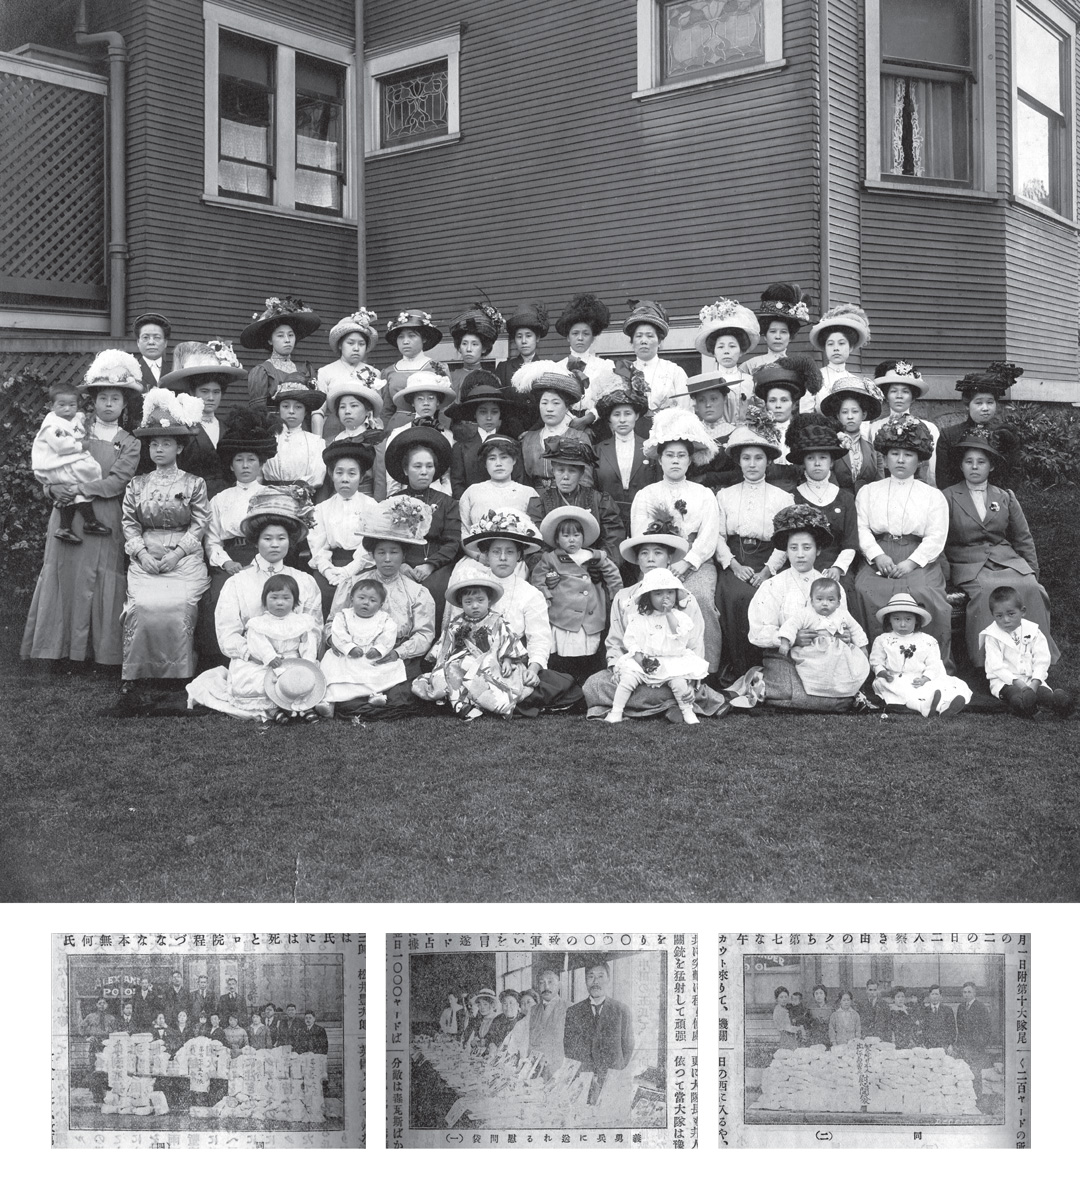 Top: The Nippon Fujinkai, circa 1910. NNM 2010.31.17. Bottom: Japanese Canadian community support for the war effort, from Kanadadobohattentaikan.